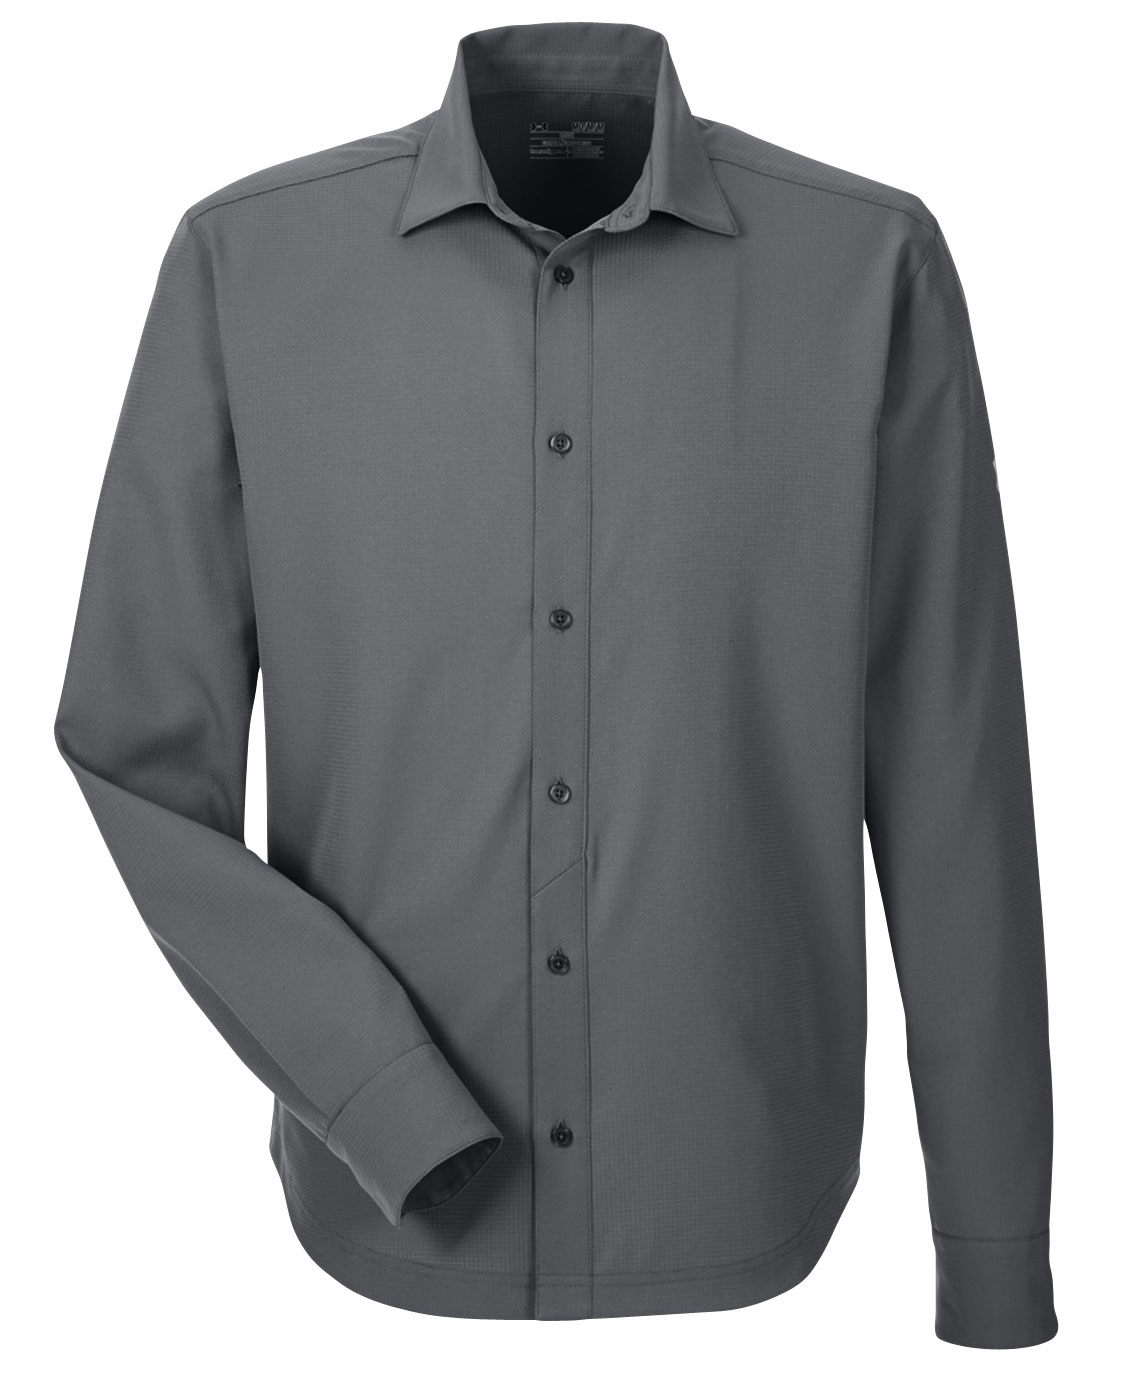 Mens Under Armour Ultimate Long Sleeve Button Down